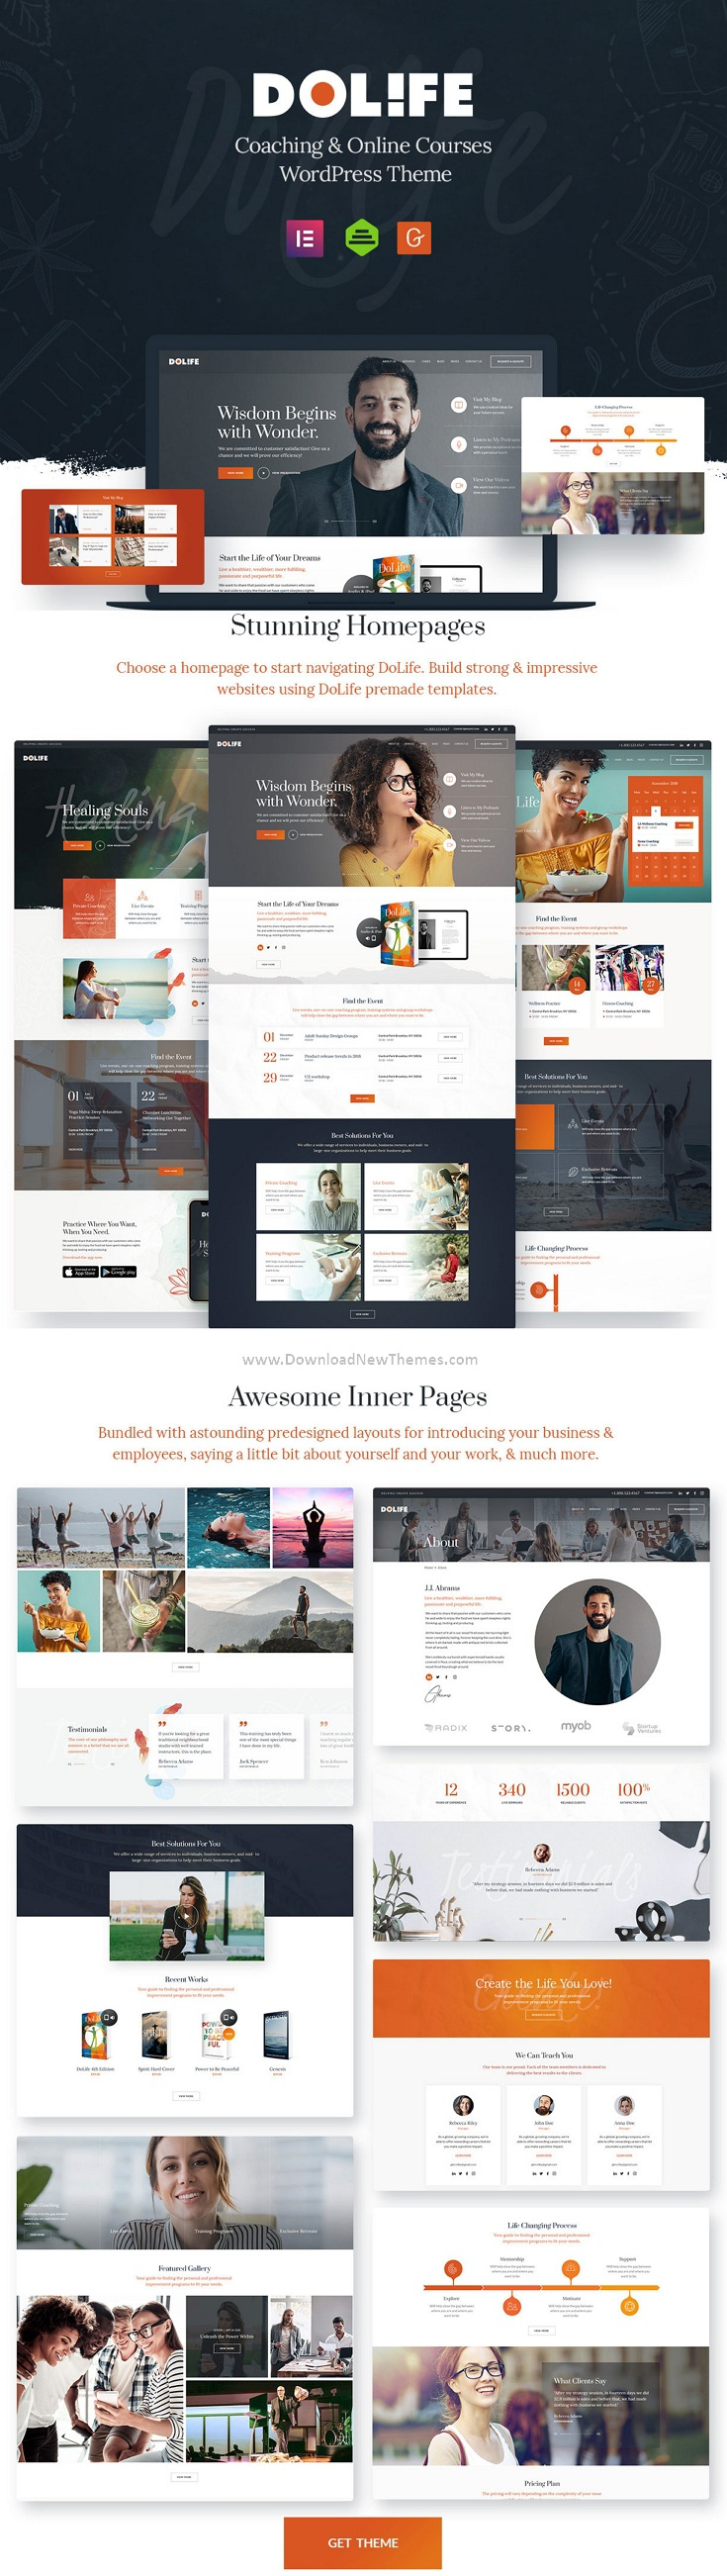 Coaching and Online Courses WordPress Theme